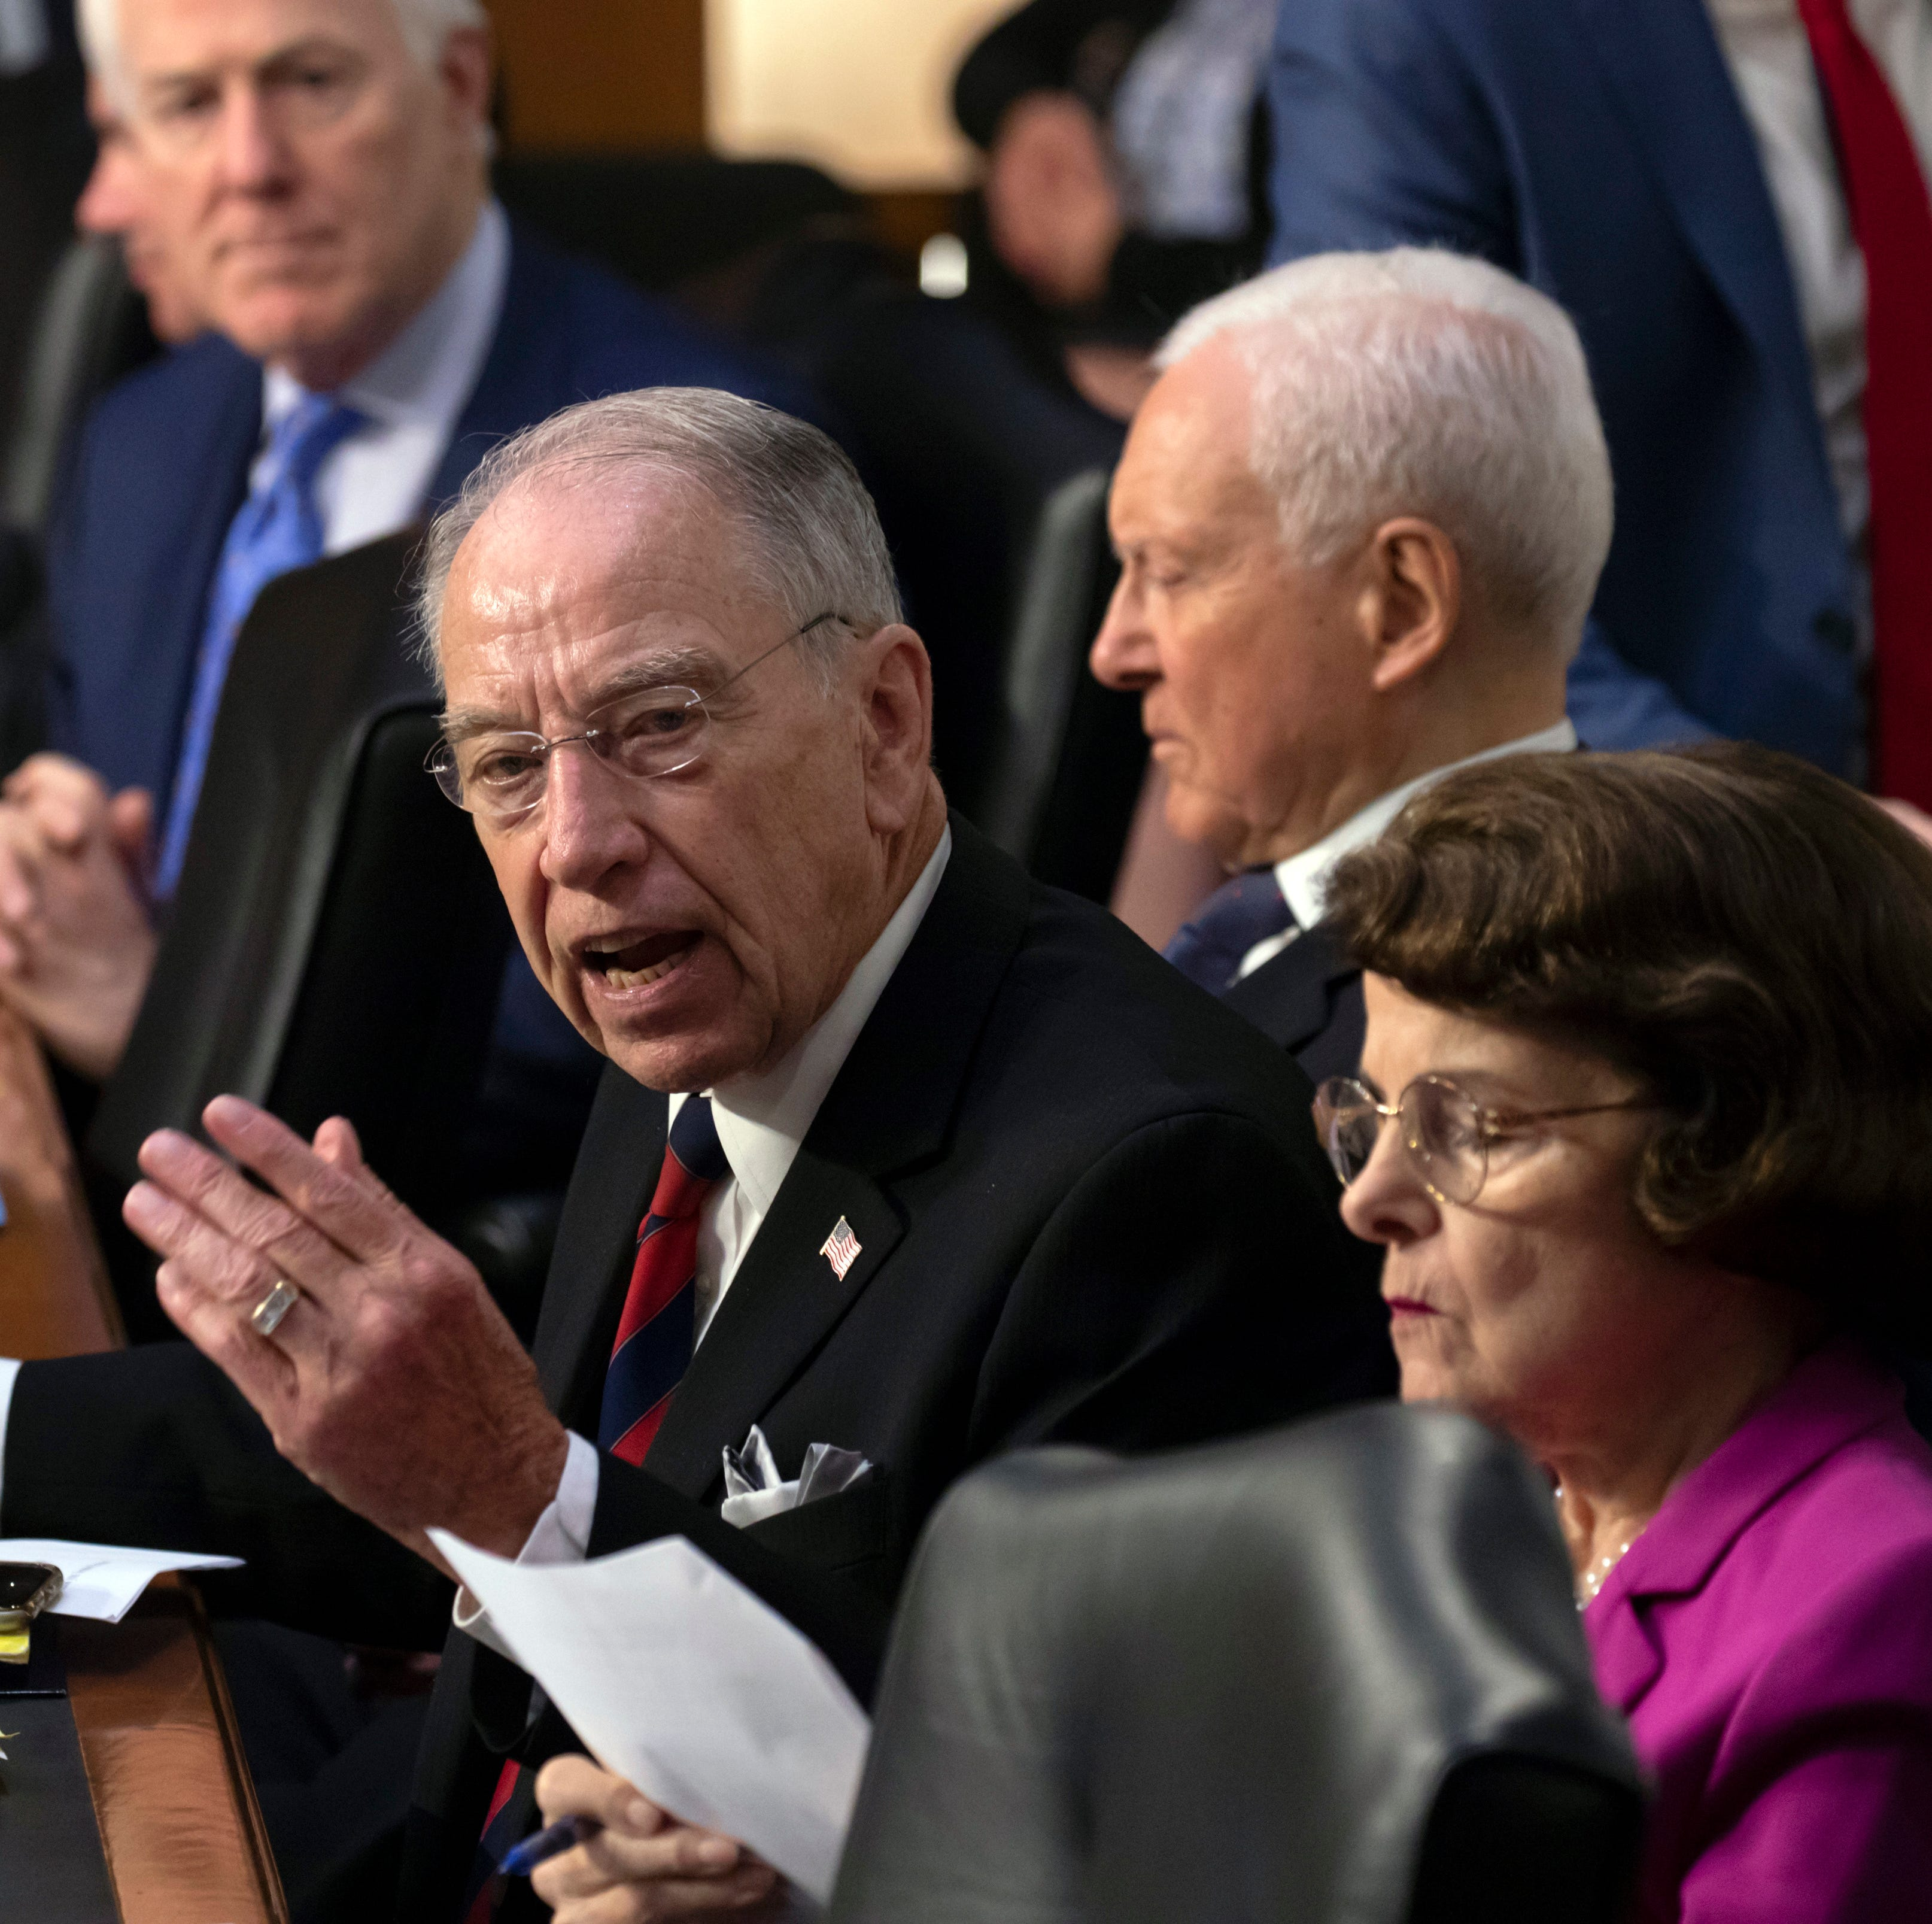 Expect Kavanaugh hearing to be inconclusive, circus-like